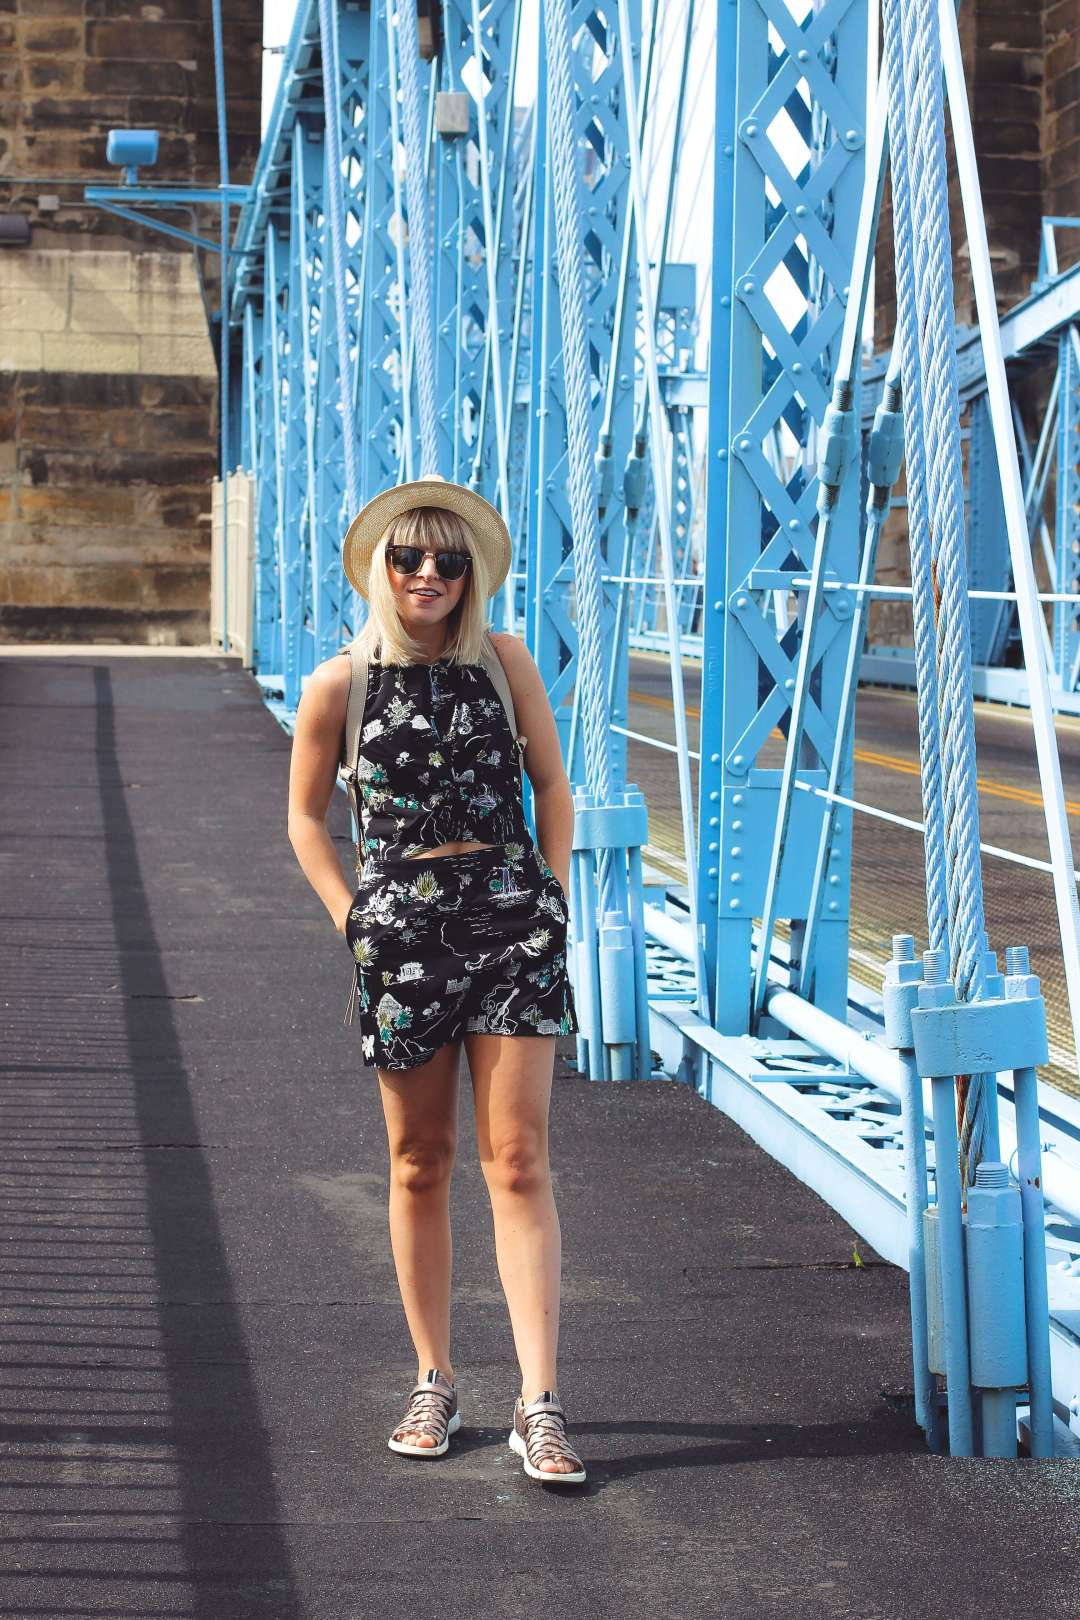 Defying Tourist Stereotypes | 5 Ways to Slay While Traveling